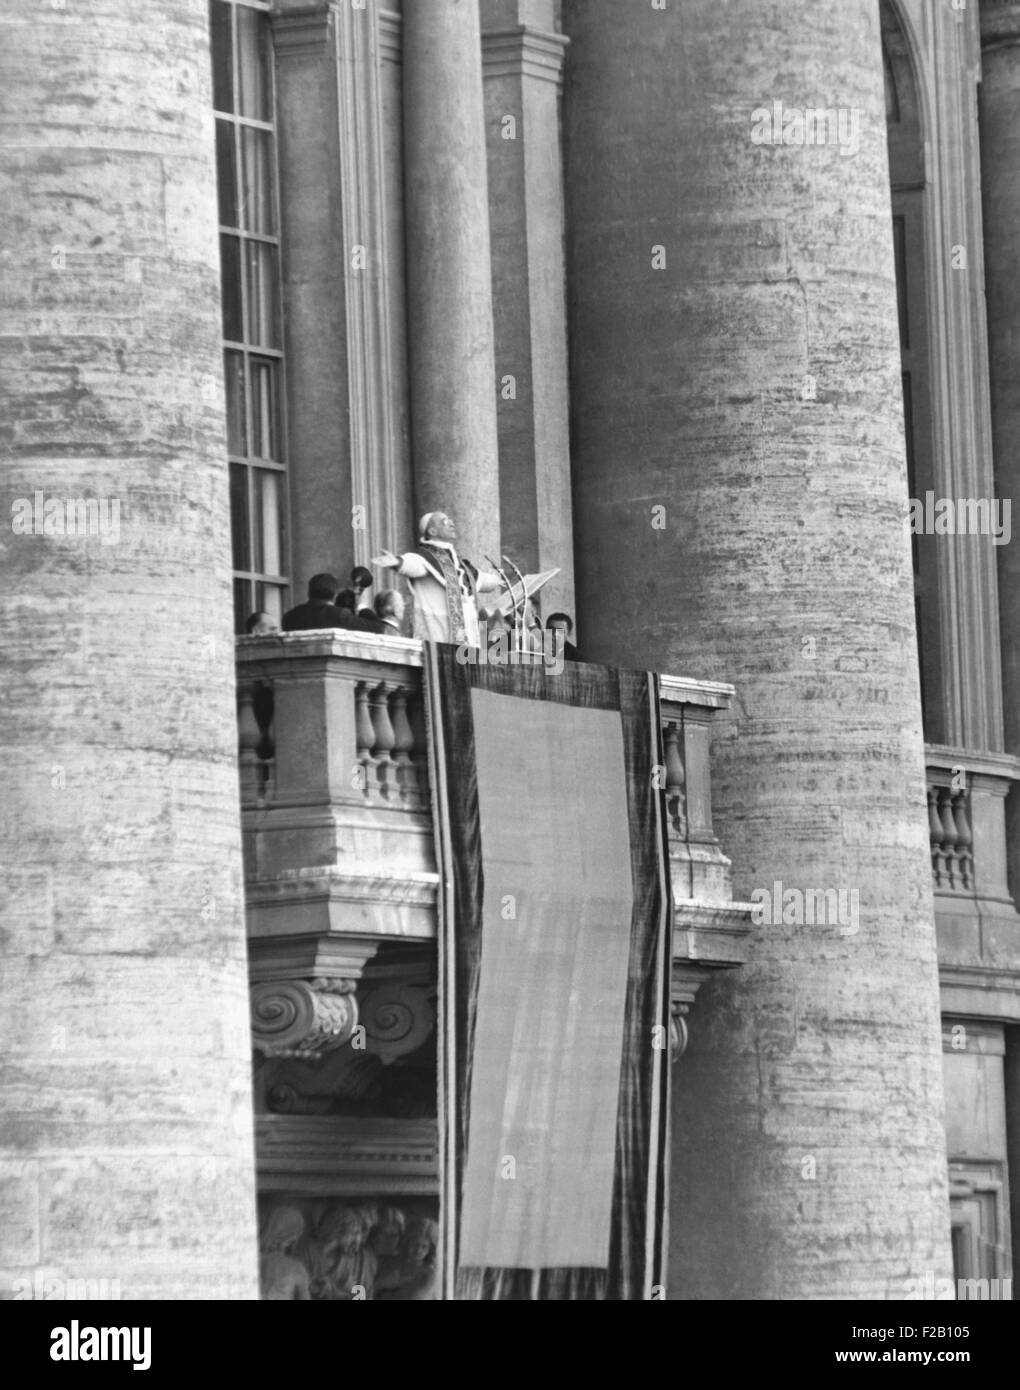 Pope Pius XII addressed a crowd of 150,000 from the balcony of St. Peter's Basilica, March 24, 1953. (CSU 2015 9 Stock Photo